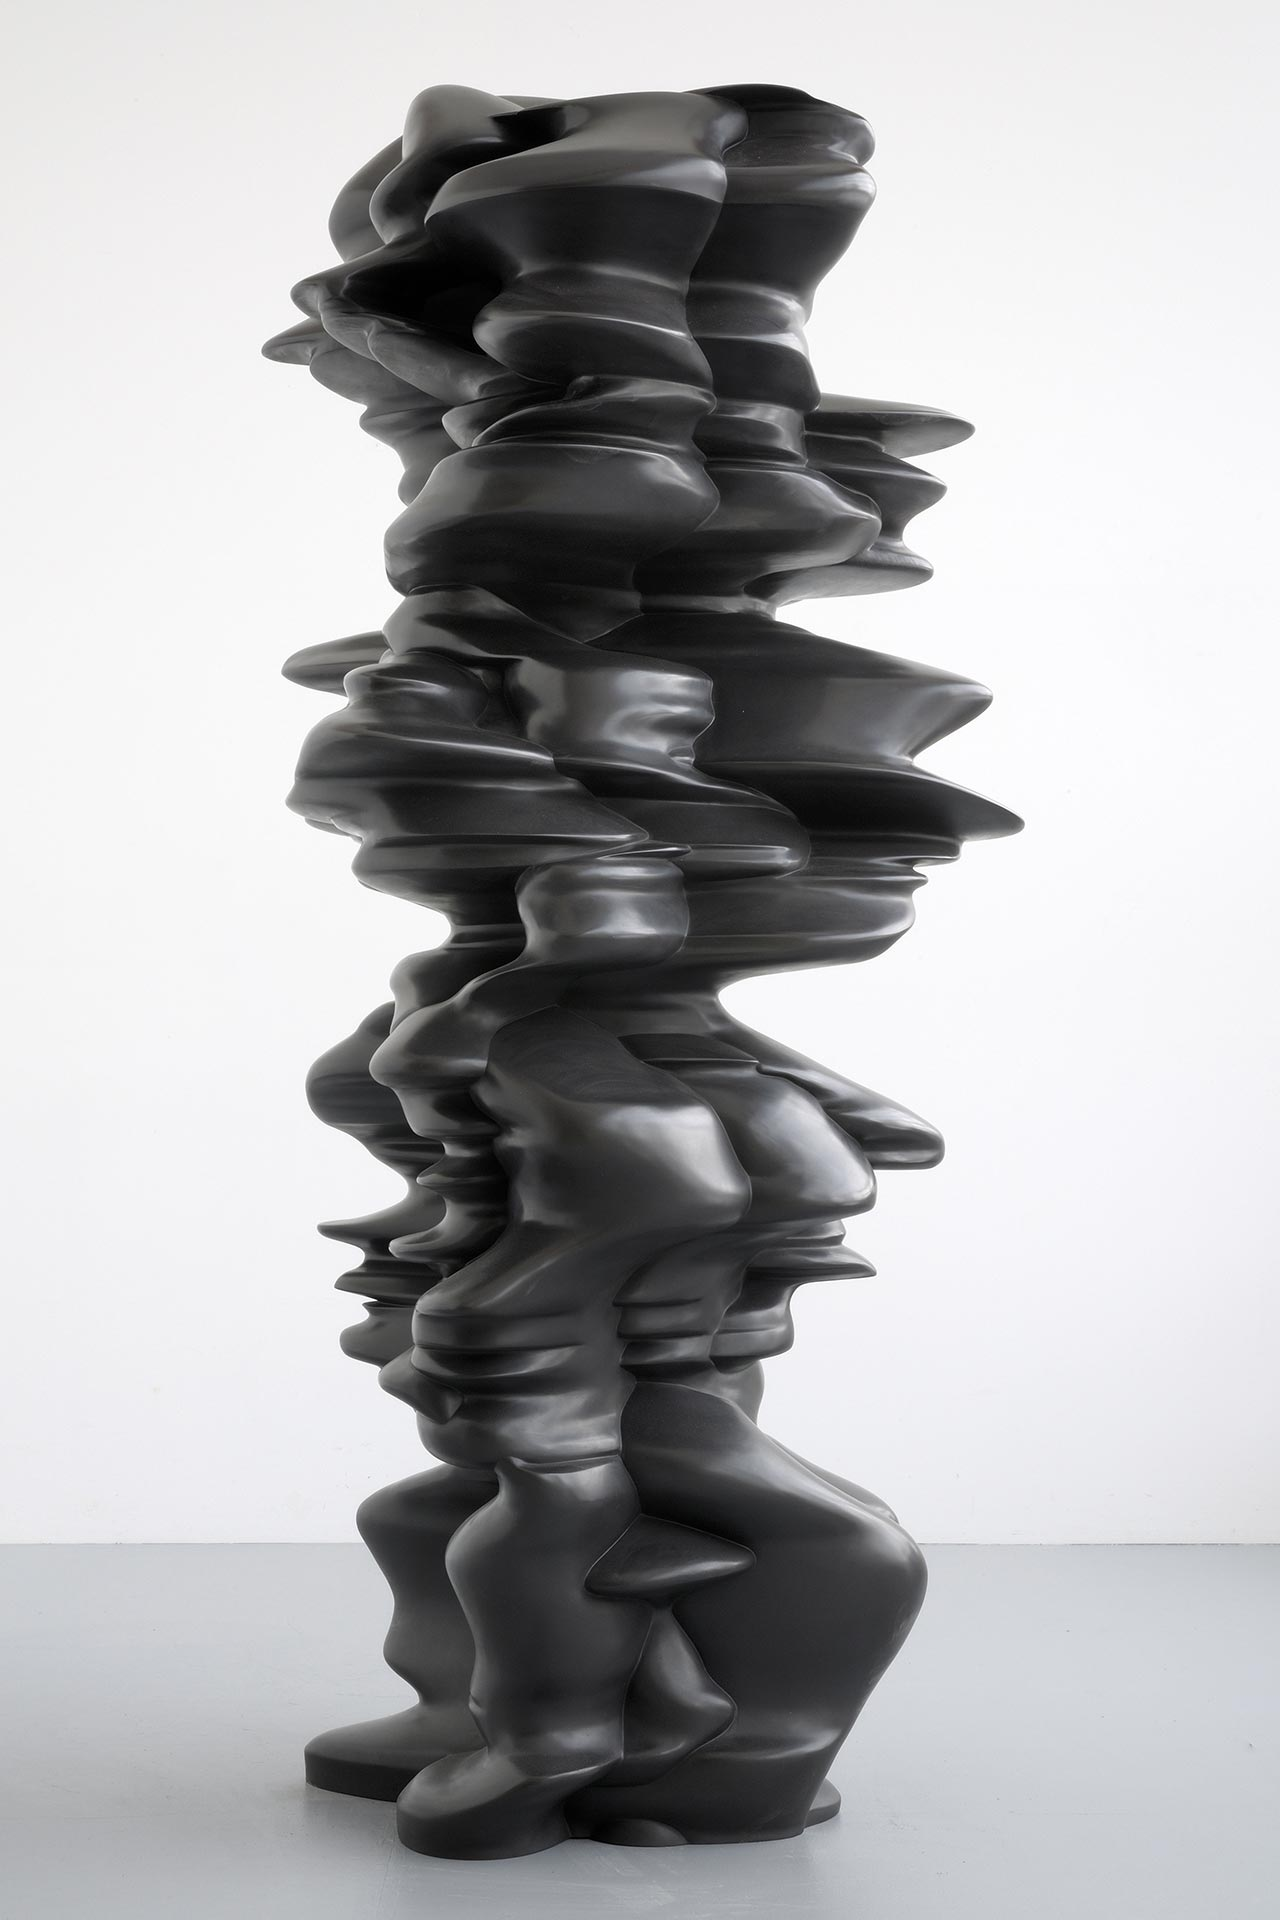 Tony Cragg, It is, It isn't, 2010. Bronze, 242 x 120 x 110cm. Photo by Charles Duprat. © VG Bild-Kunst Bonn 2016.